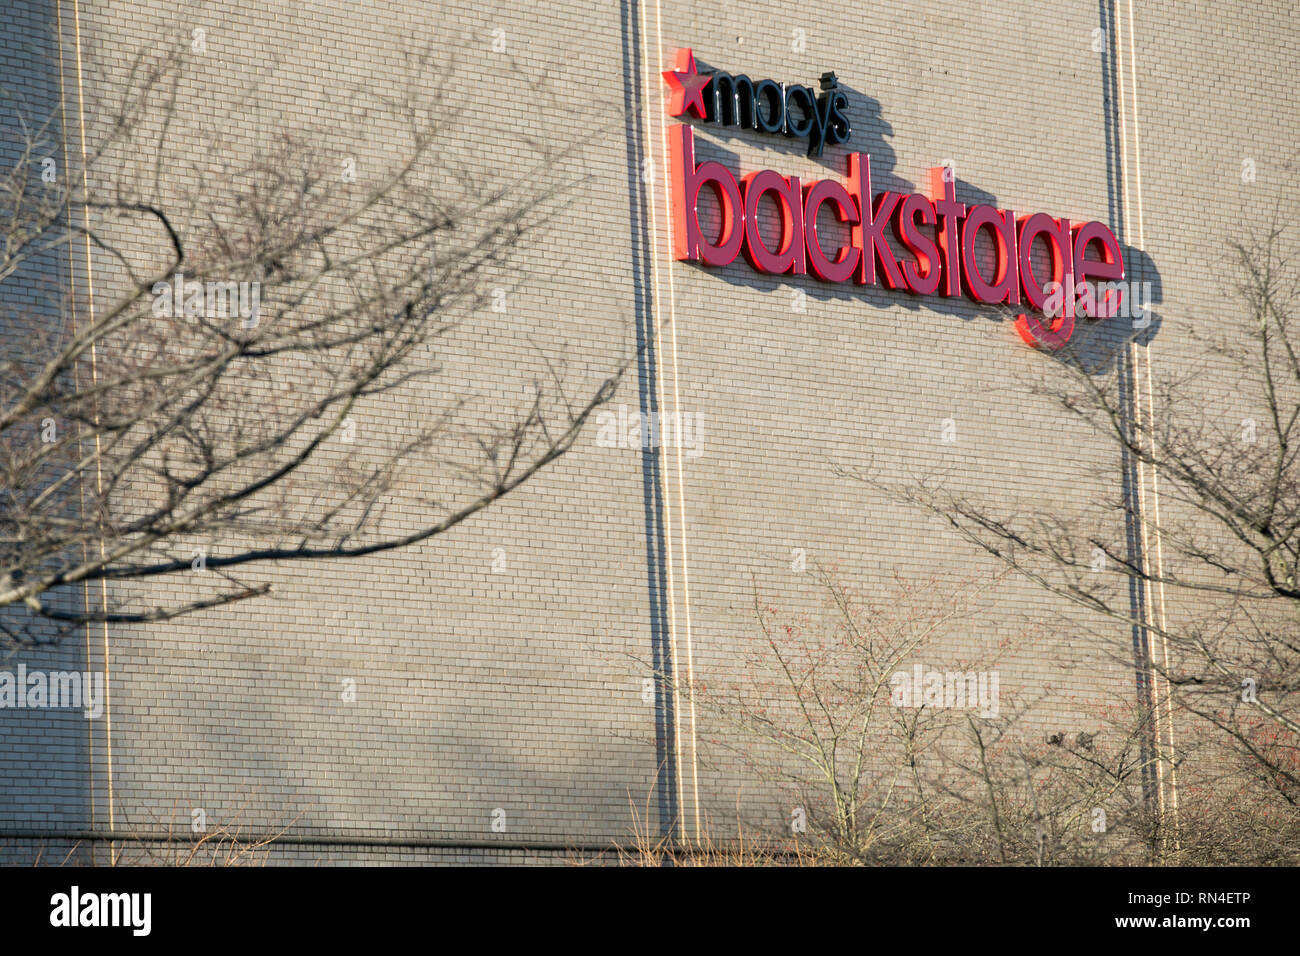 A logo sign outside of a Macy's Backstage retail store location in Dulles, Virginia on February 14, 2019. - Stock Image